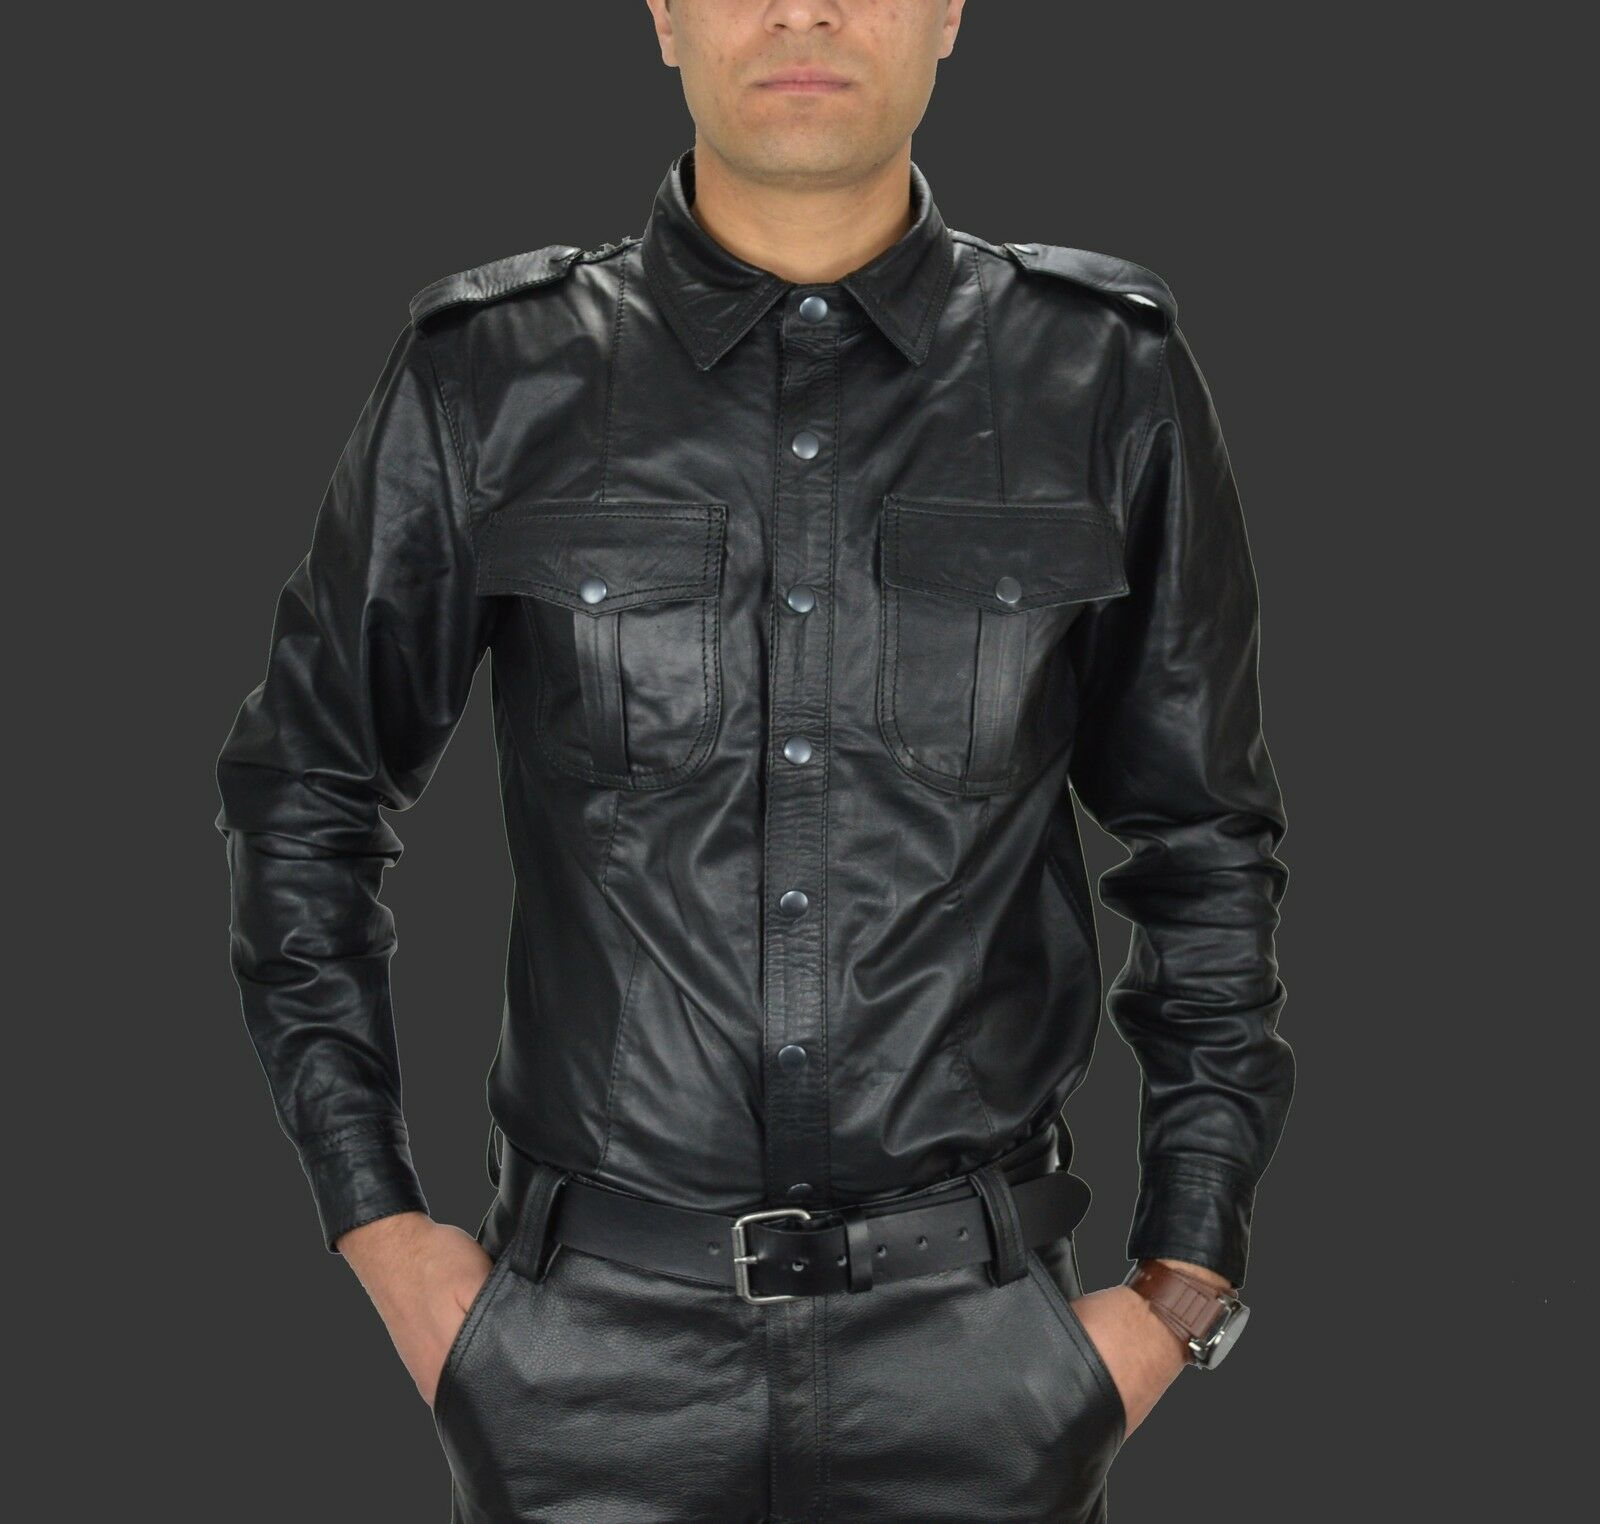 Aw-669 CAMICIA IN PELLE, LEATHER Shirt, Chemise cuir, Soft Pelle Camicia, POLICE STYLE Camicia